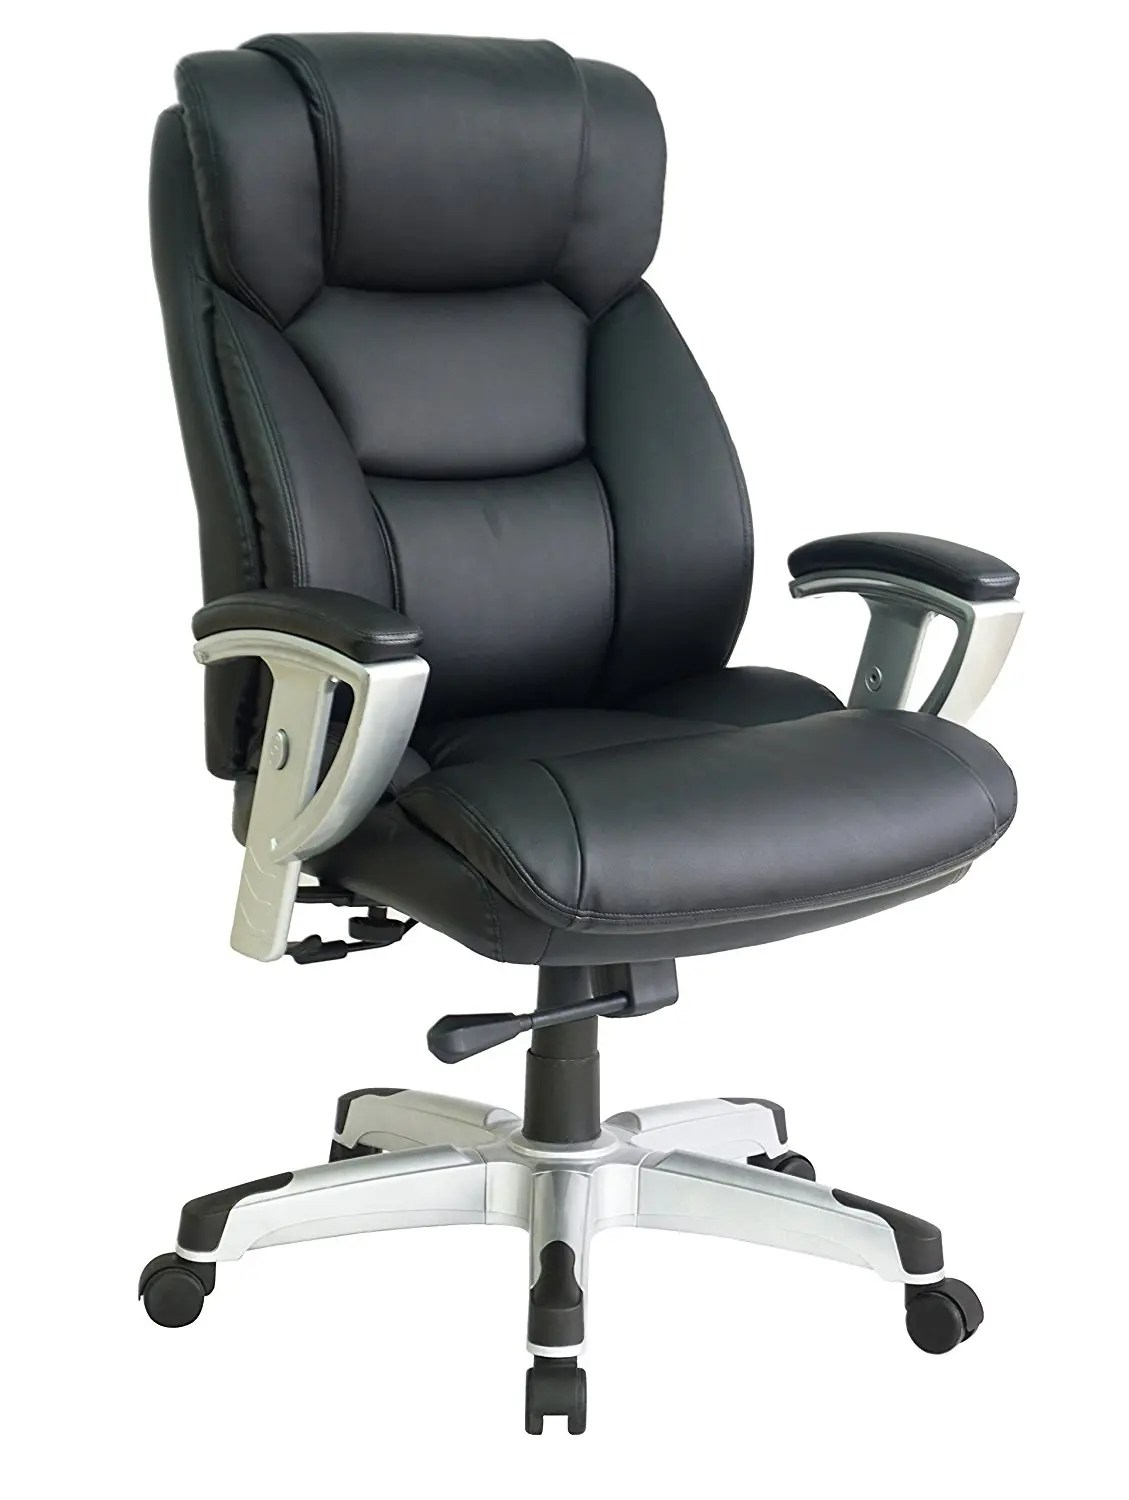 office chairs for heavy people chair cushion foam 400 lb capacity executive